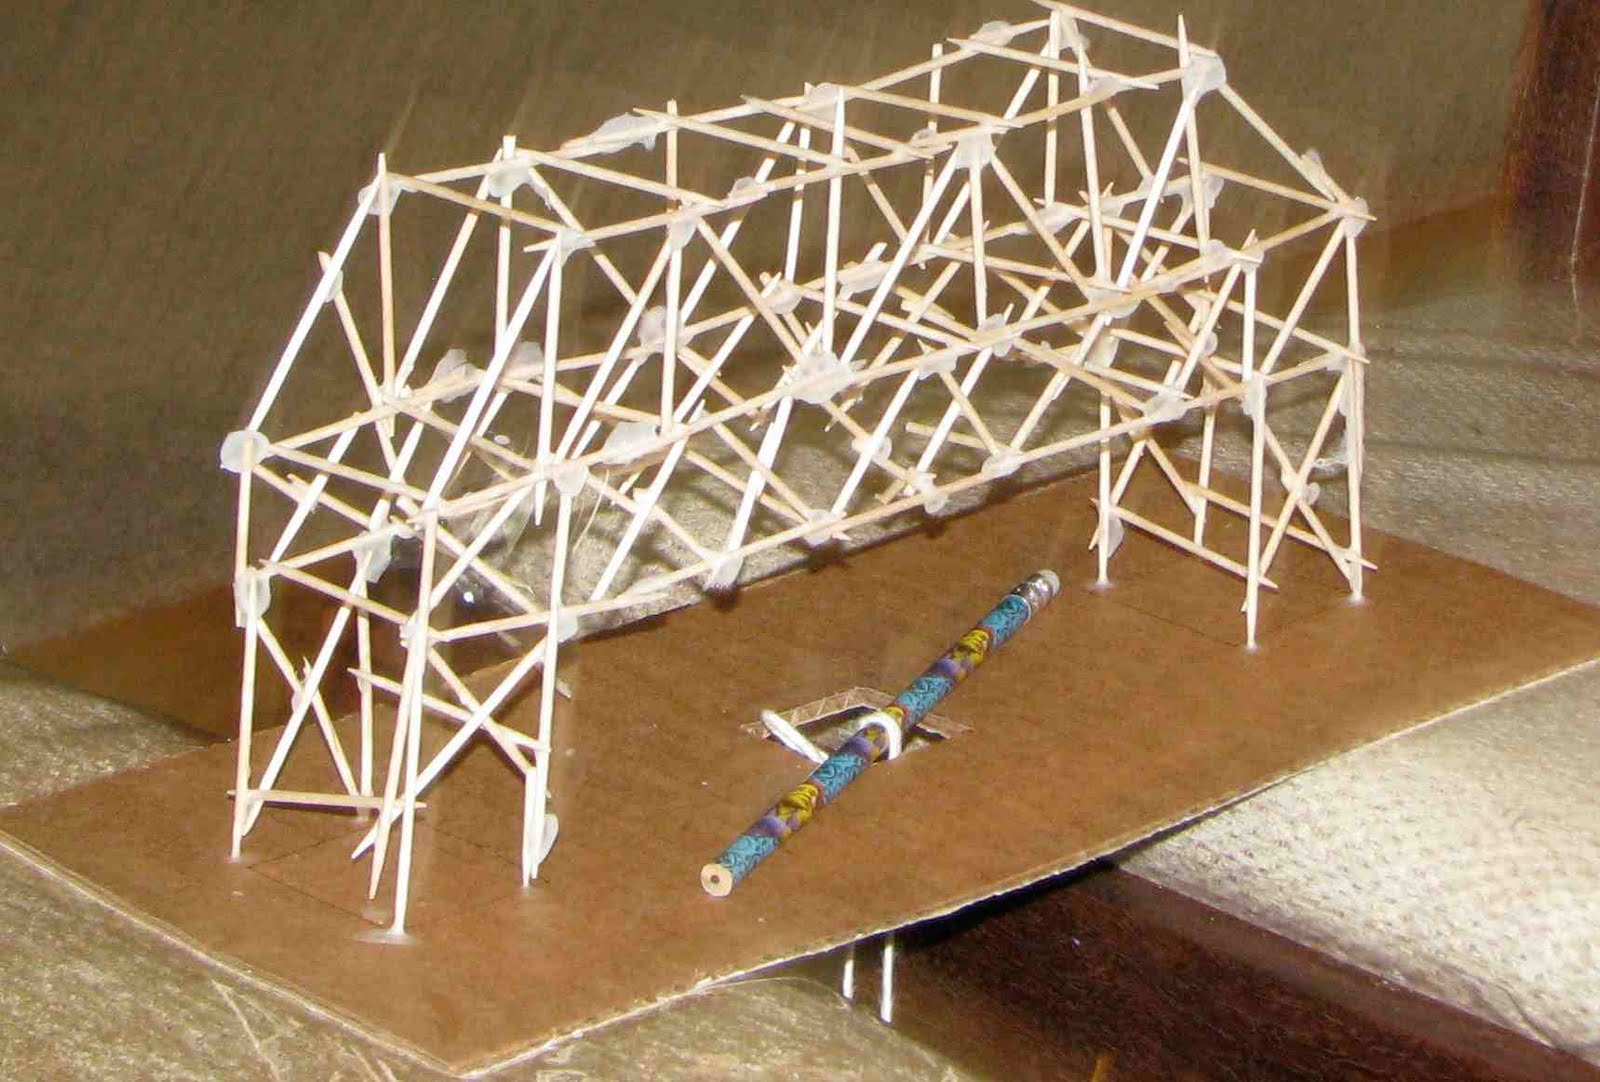 build an important toothpick bridge